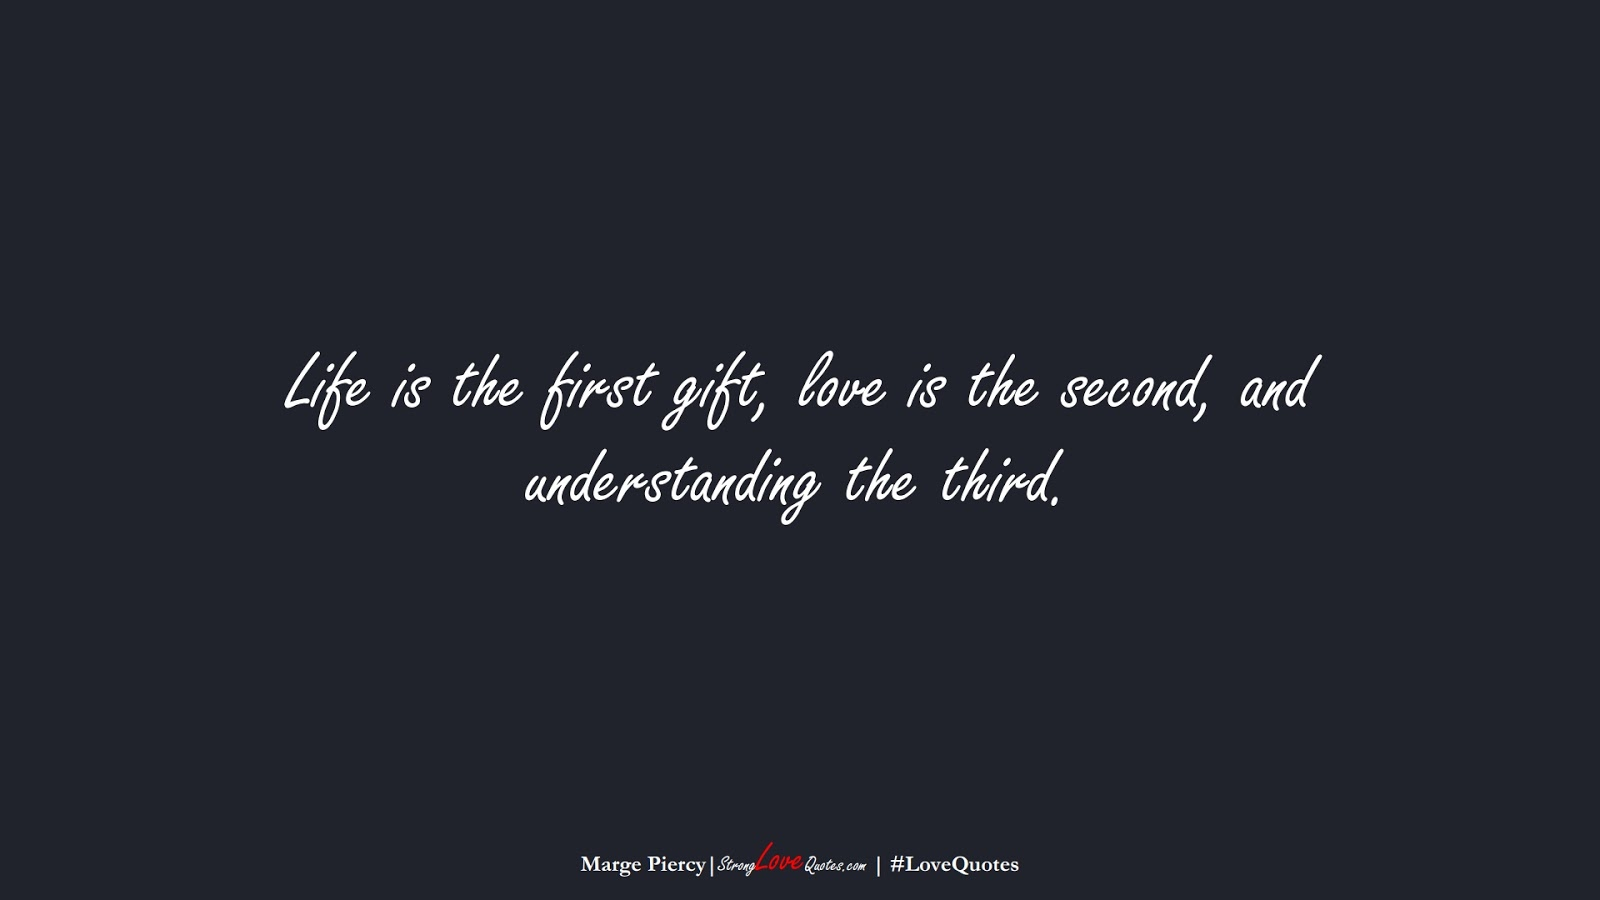 Life is the first gift, love is the second, and understanding the third. (Marge Piercy);  #LoveQuotes